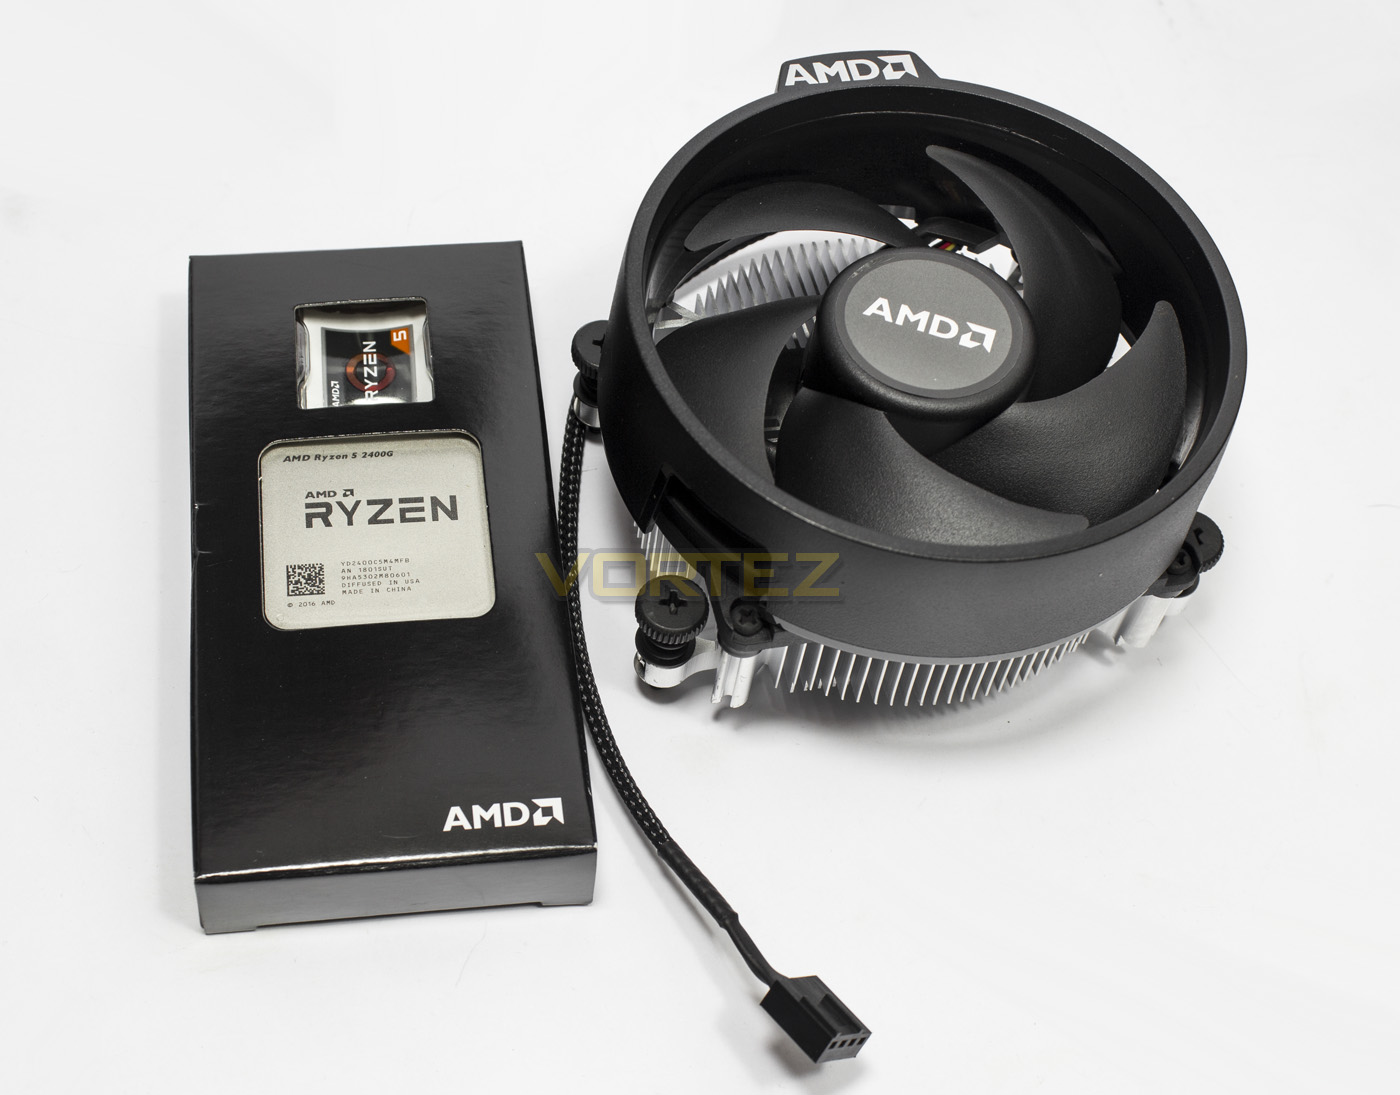 AMD RYZEN 3 2200G and RYZEN 5 2400G Review - Packaging & Product